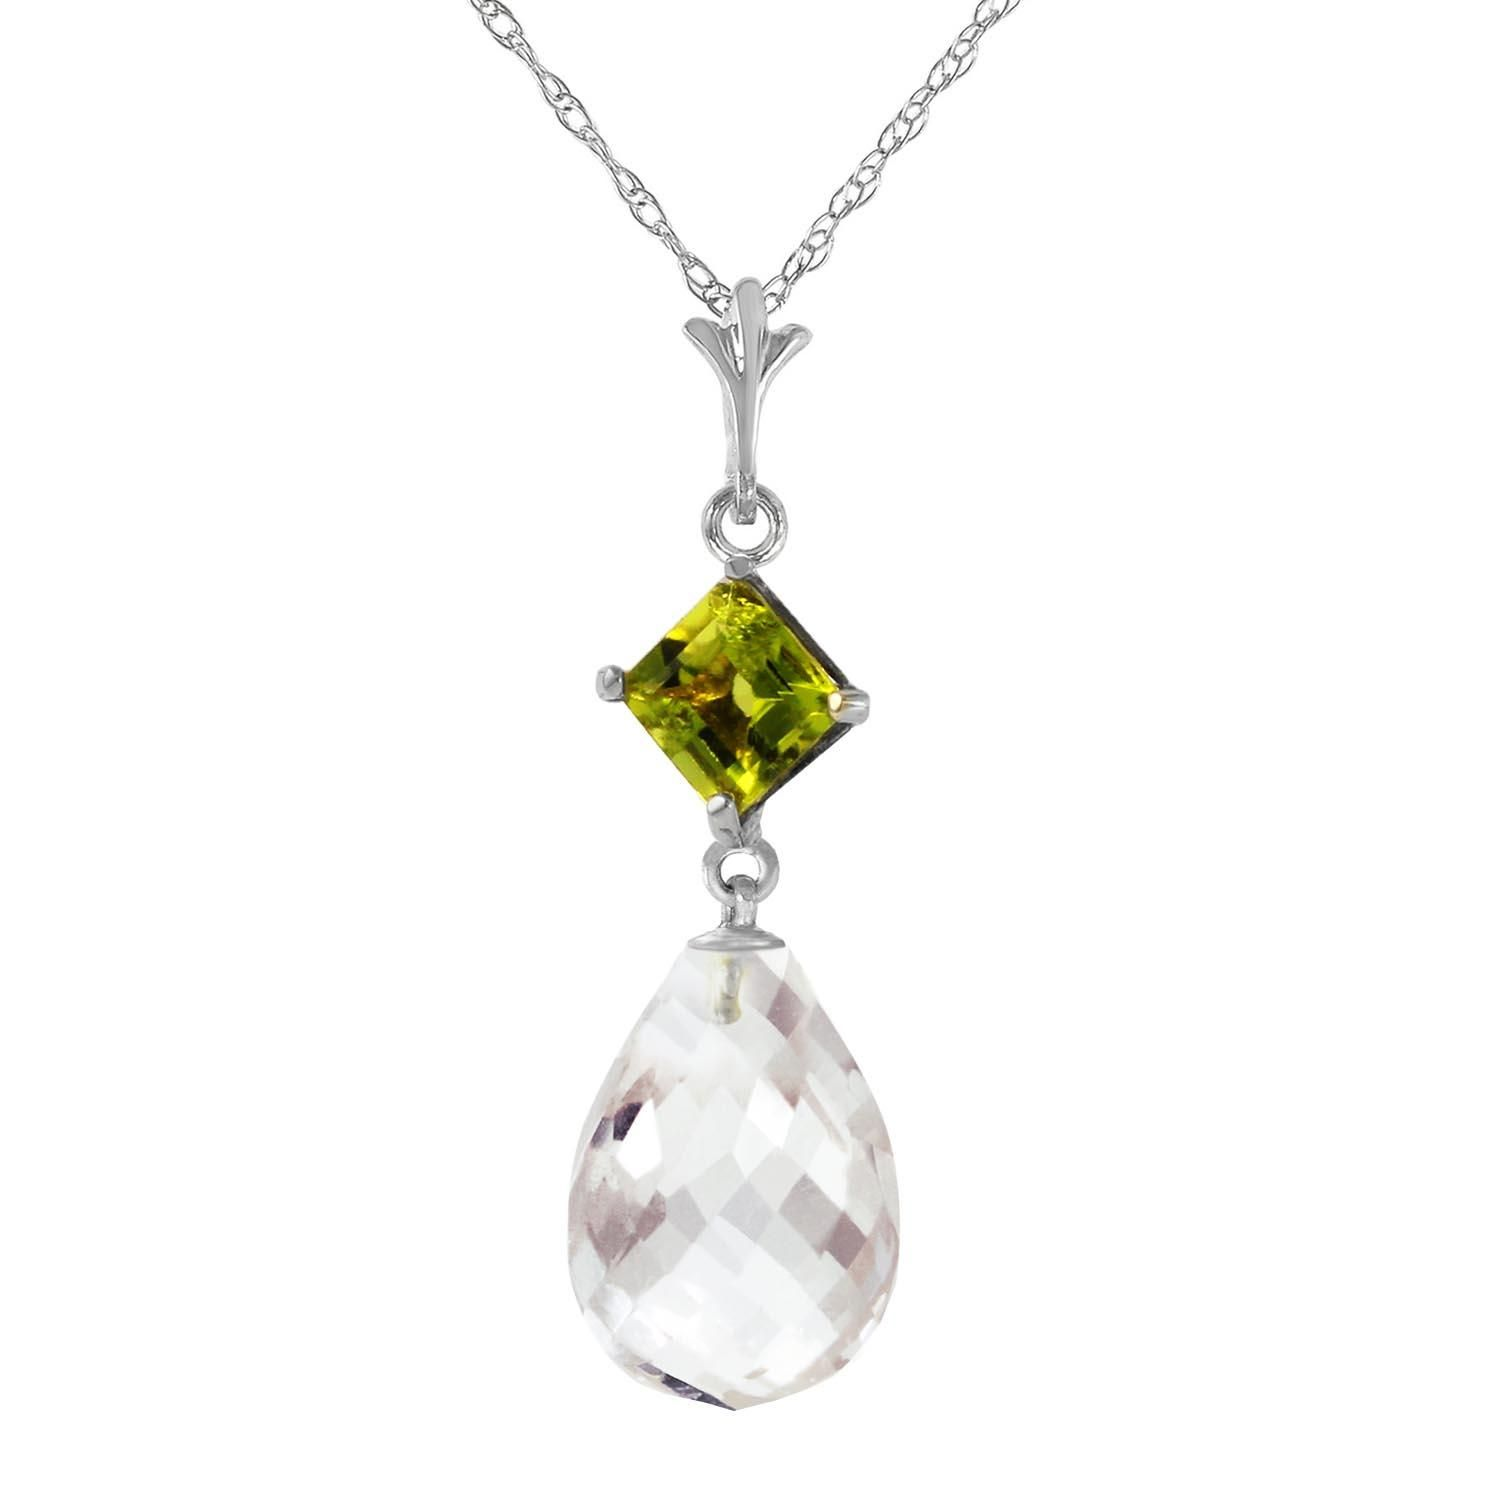 5efe728b4 #mothersday #AdoreWe #QP Jewellers Jewelry - QP Jewellers White Topaz and Peridot  Pendant Necklace 5.5ctw in 9ct White Gold - AdoreWe.com